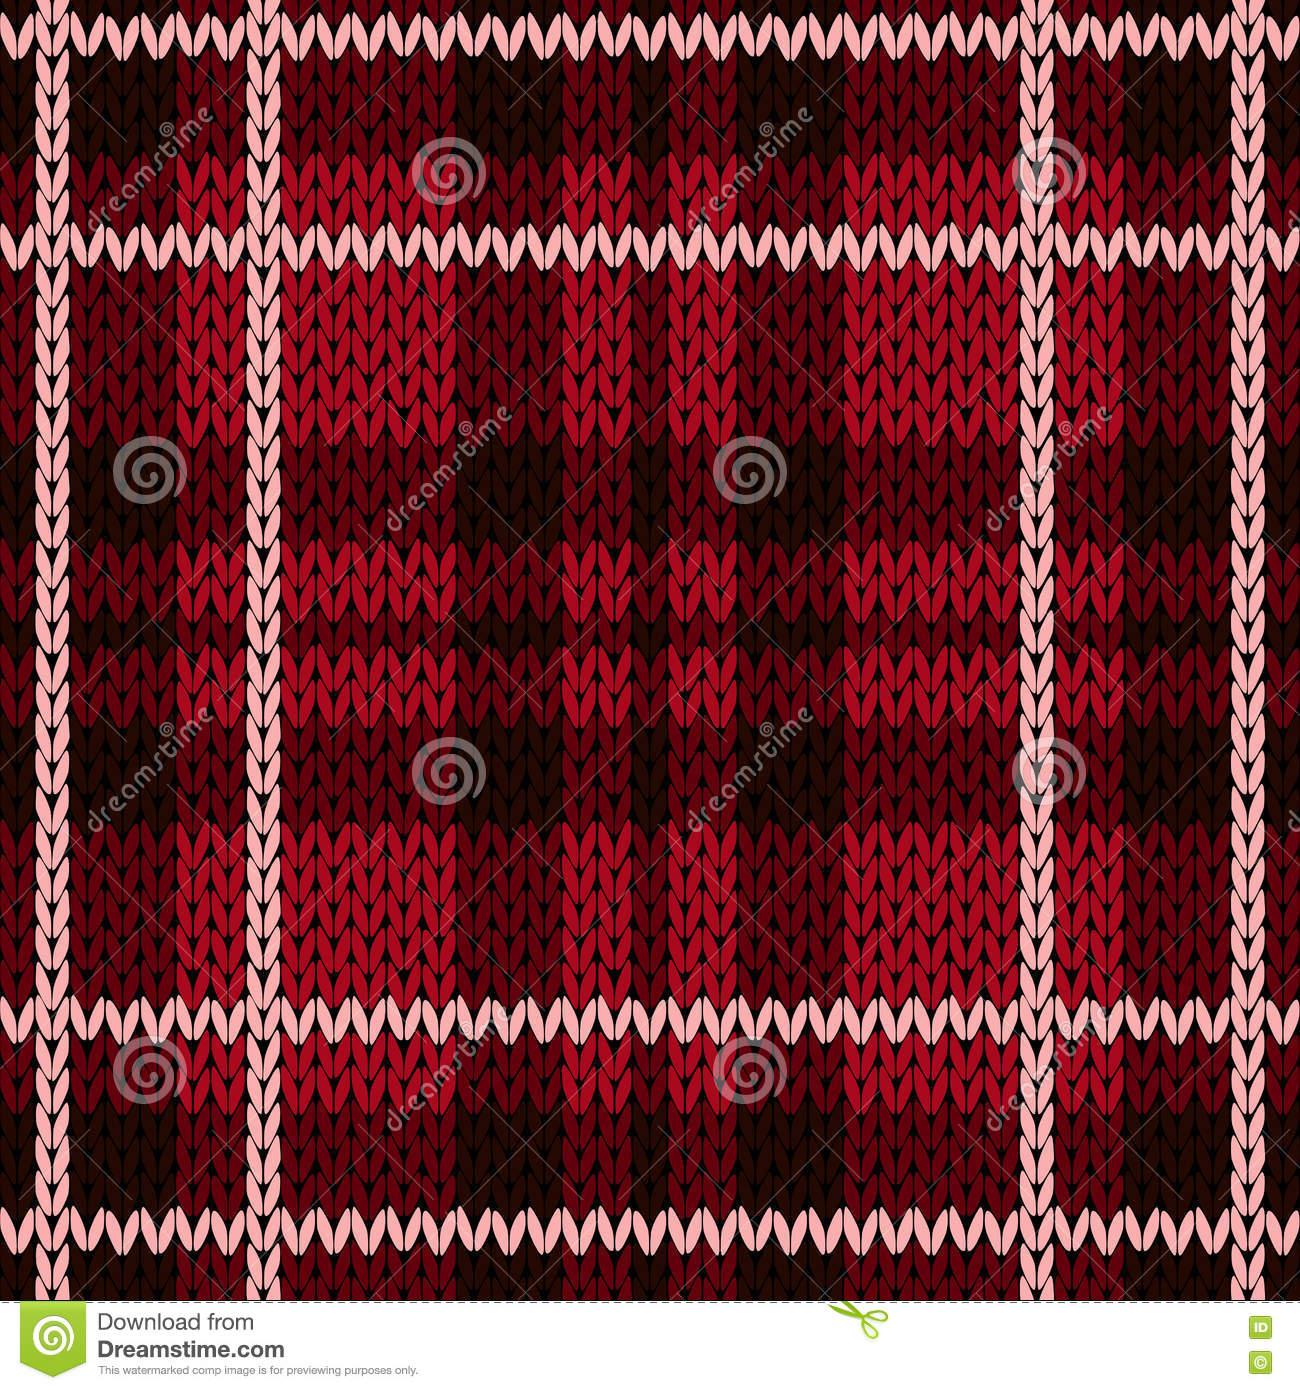 Checkered Knitting Pattern : Knitting Checkered Seamless Pattern Mainly In Red Hues ...